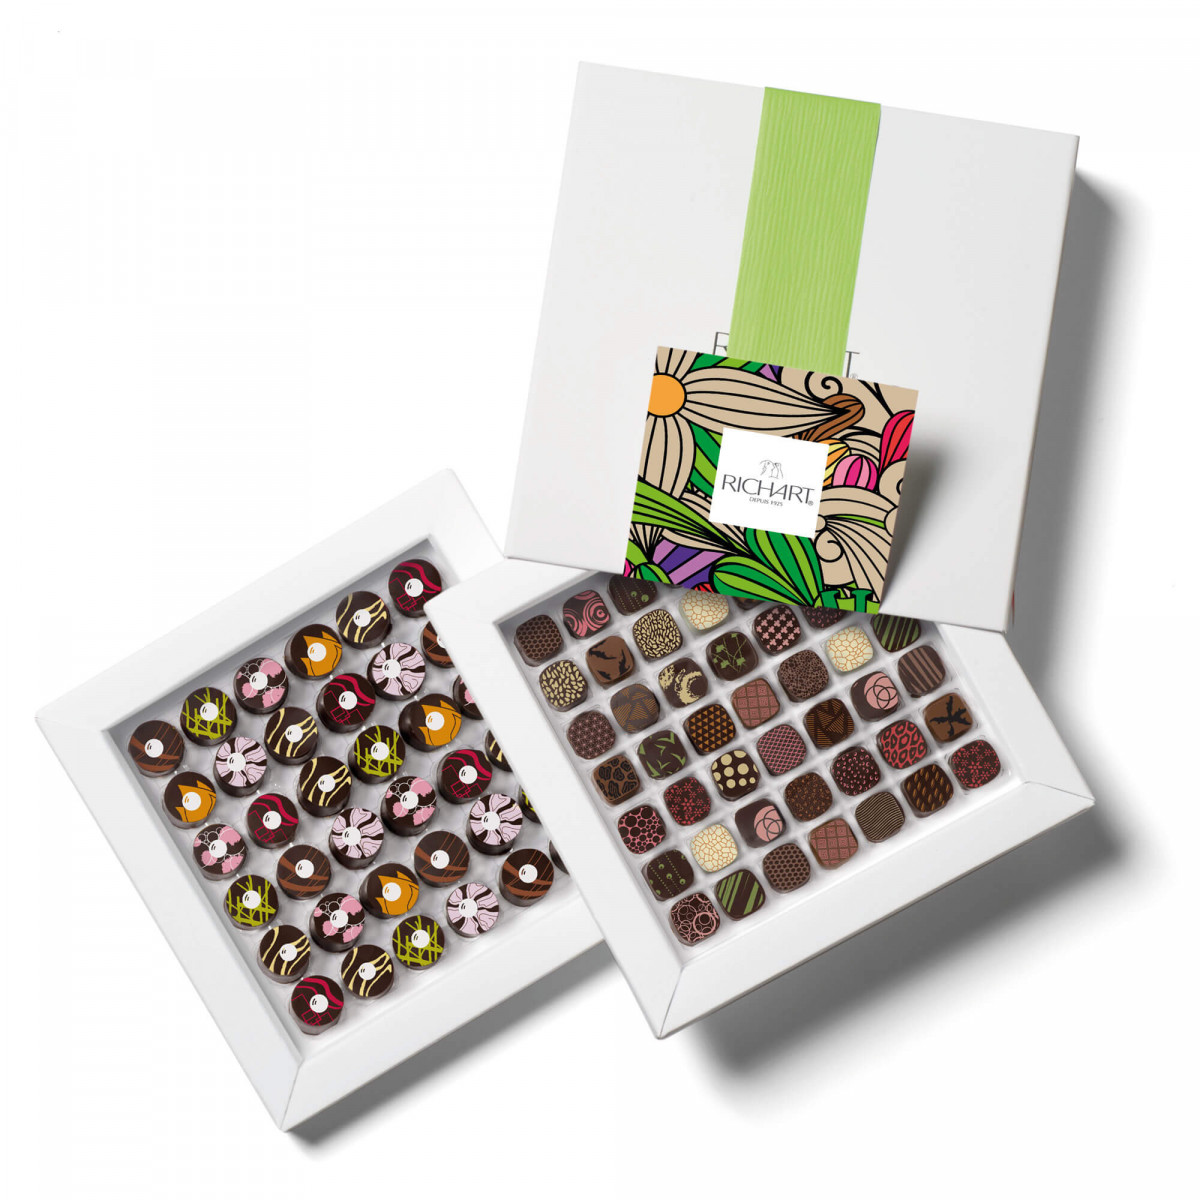 Splendor Box of 85 filled chocolates